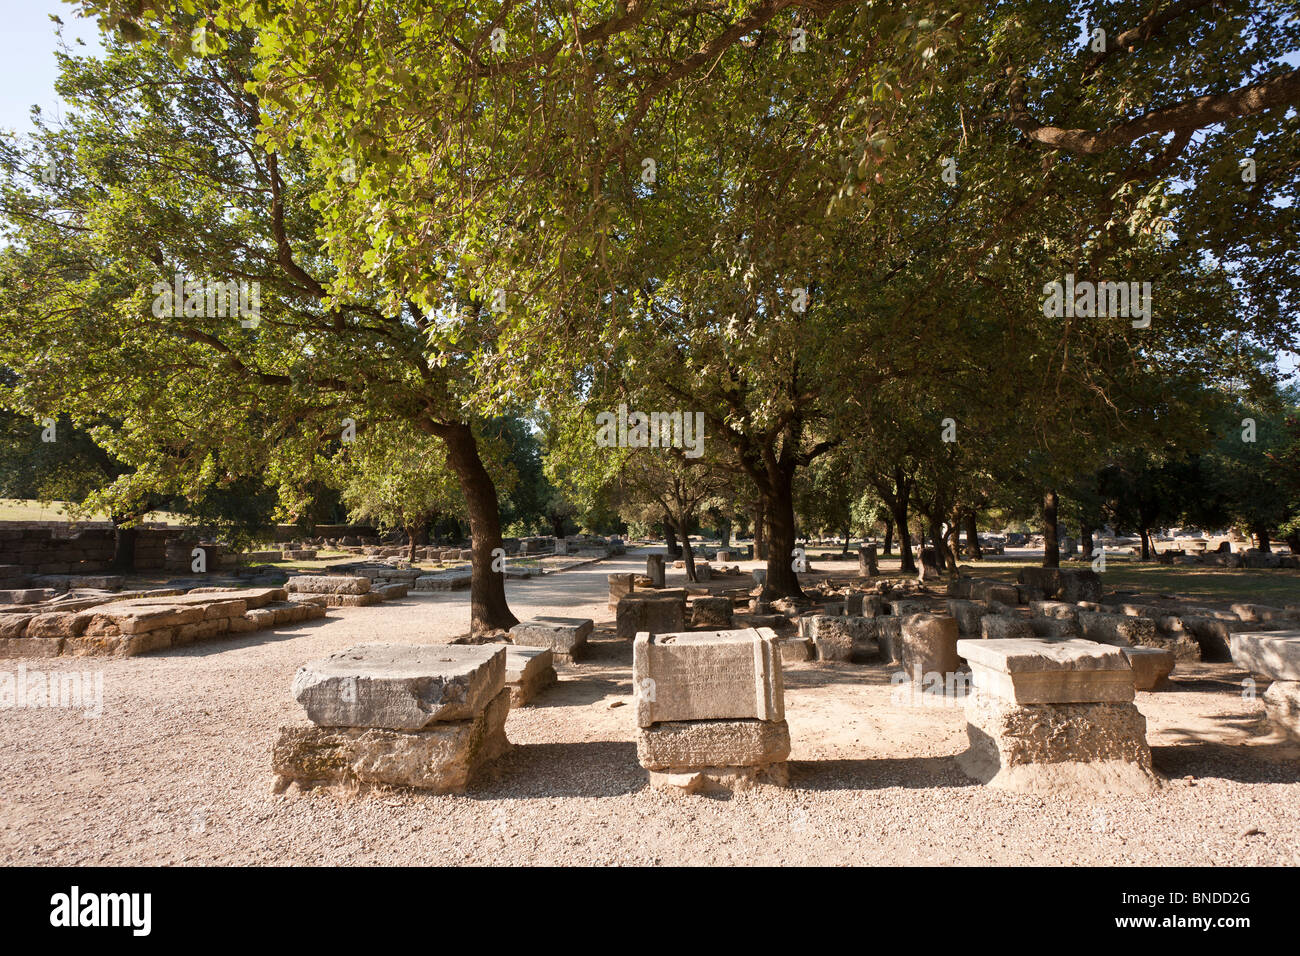 Bases of the Zanes among the ruins at Olympia, Greece. See description for more info. - Stock Image